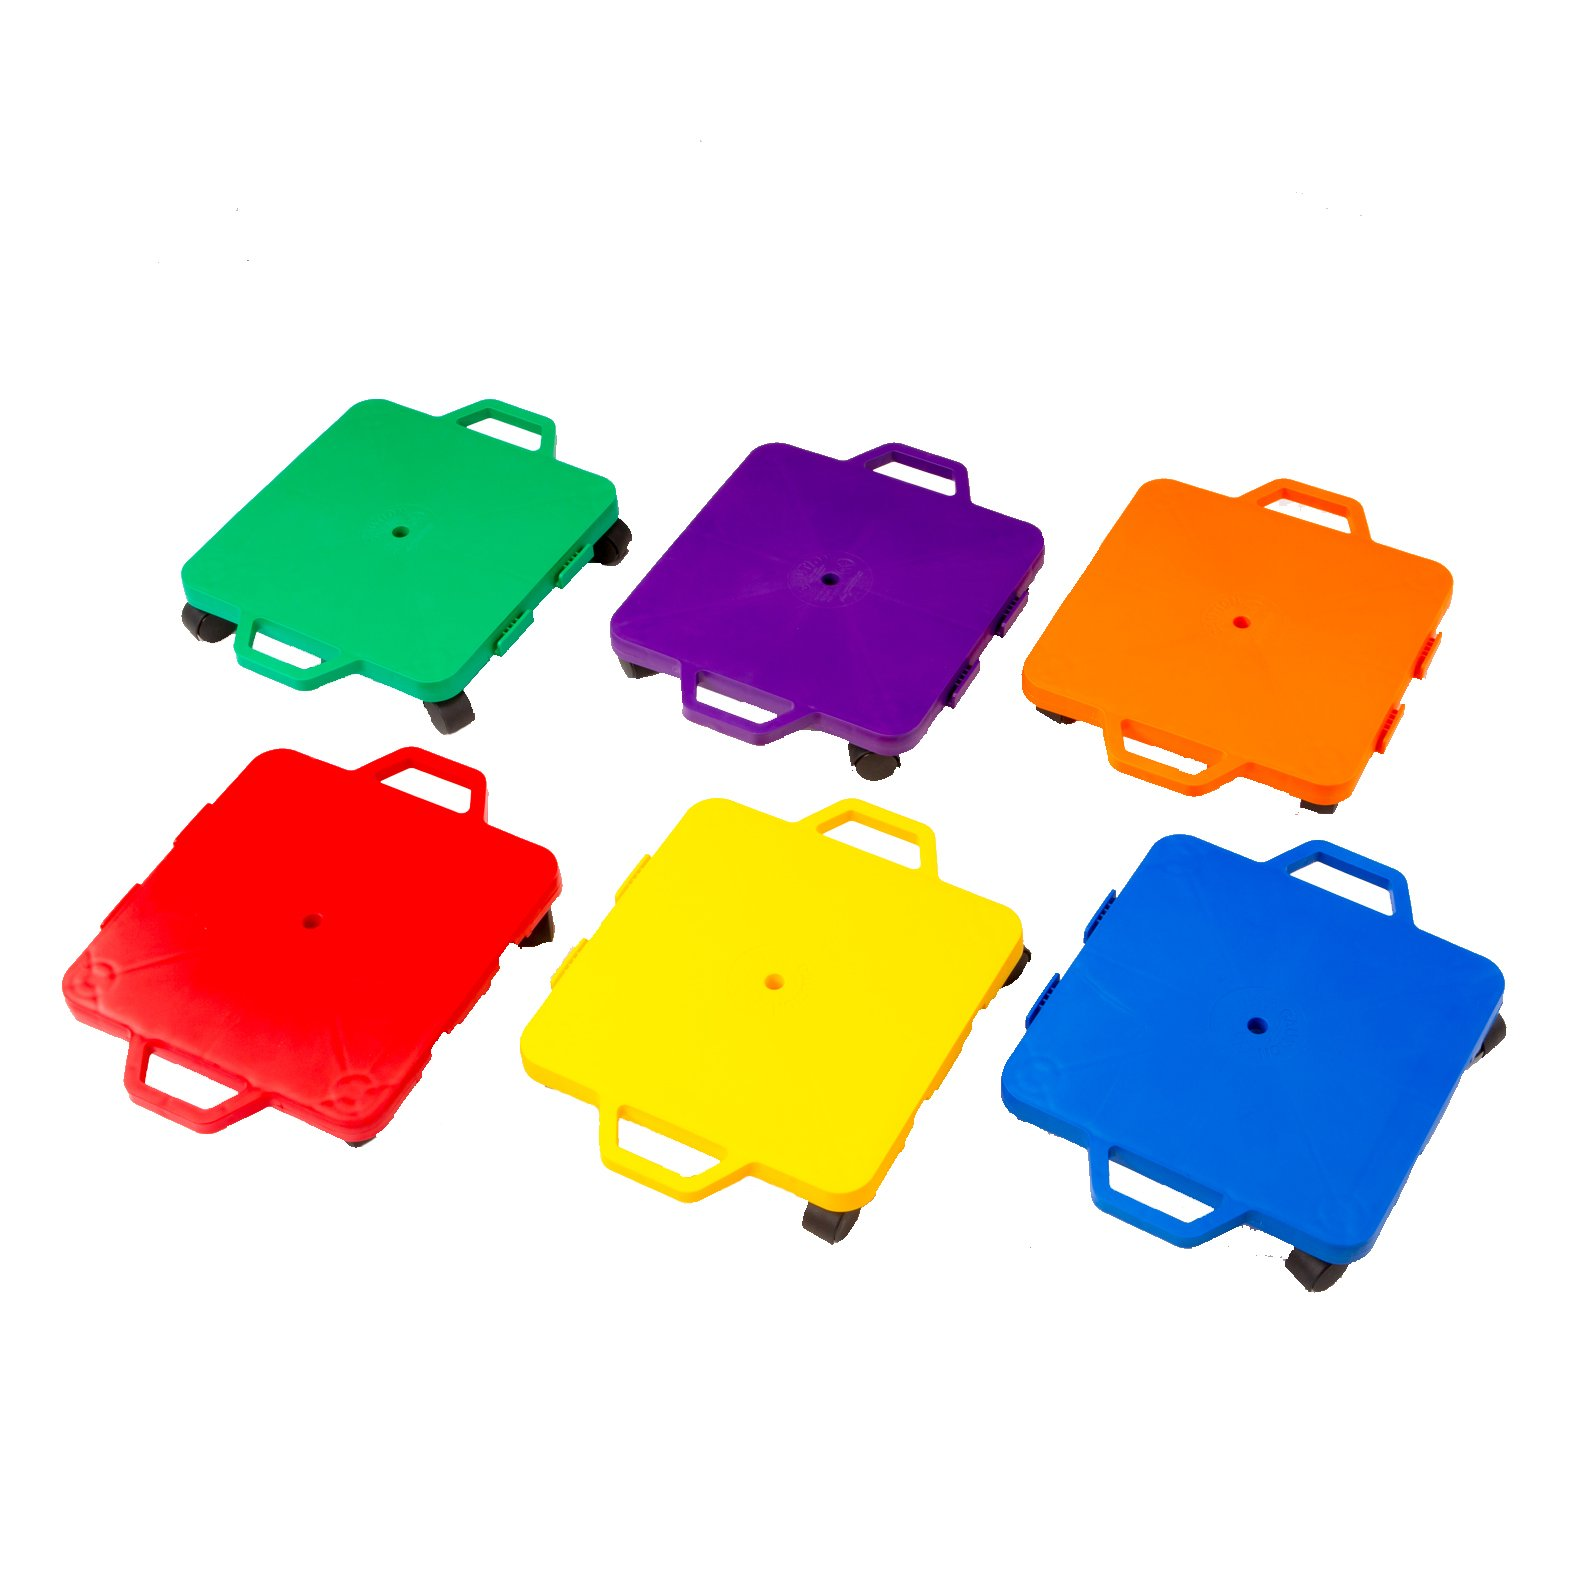 Cosom Scooter Board Set, 16 Inch Children's Sit & Scoot Board With 2 Inch Non-Marring Nylon Casters & Safety Guards for Physical Education Class, Sliding Boards with Safety Handles, 6 Colors by BSN Sports